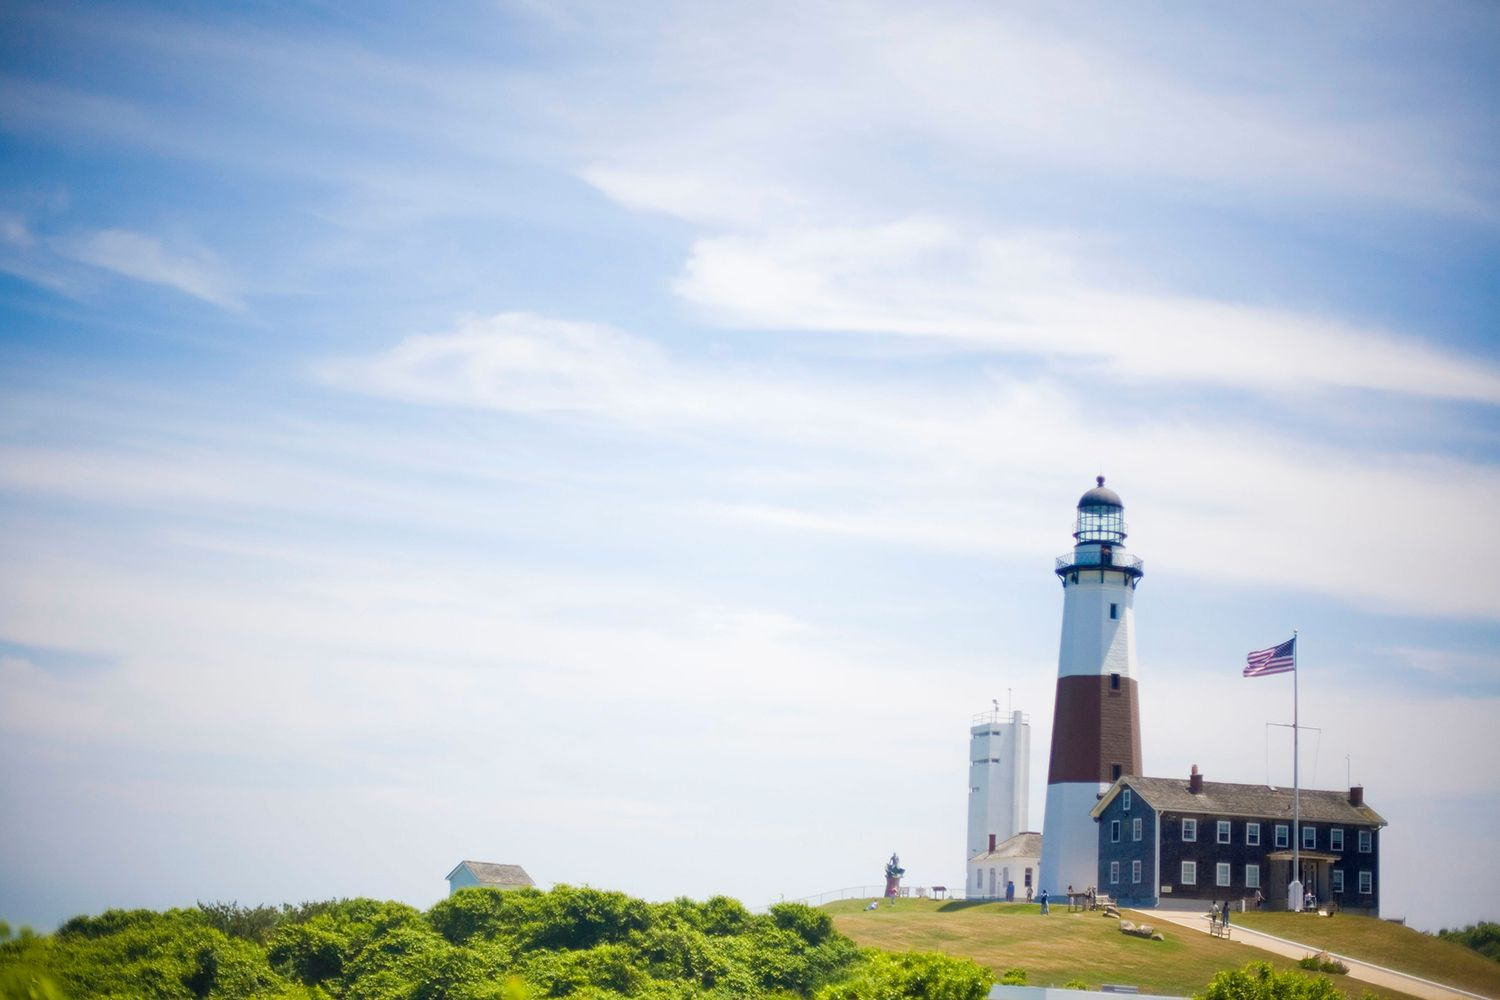 The Montauk Lighthouse, designed by John McComb at the eastern end of Long Island in New York state